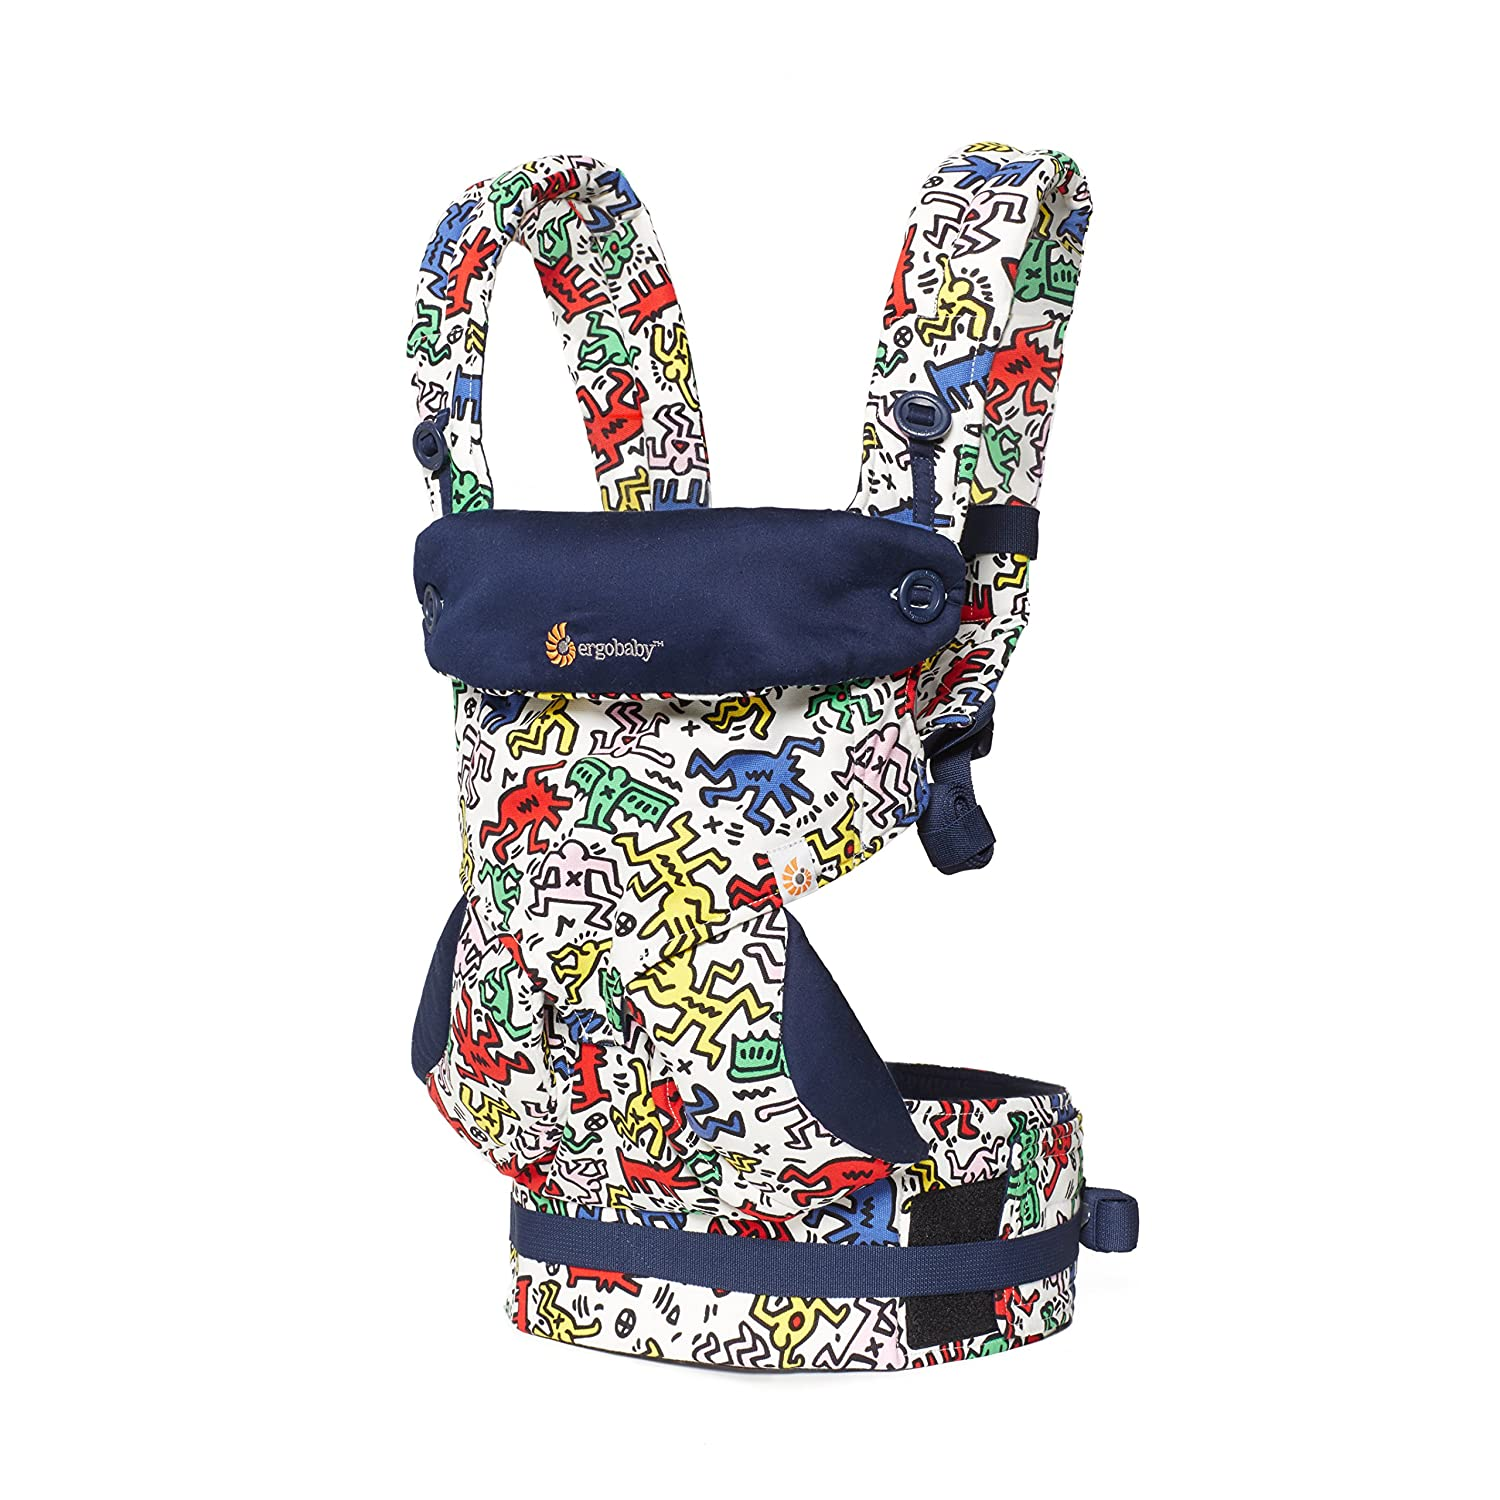 6e639b2e43d Ergobaby Babycarrier 360 Four Postition Keith Haring Pop  Amazon.co.uk  Baby